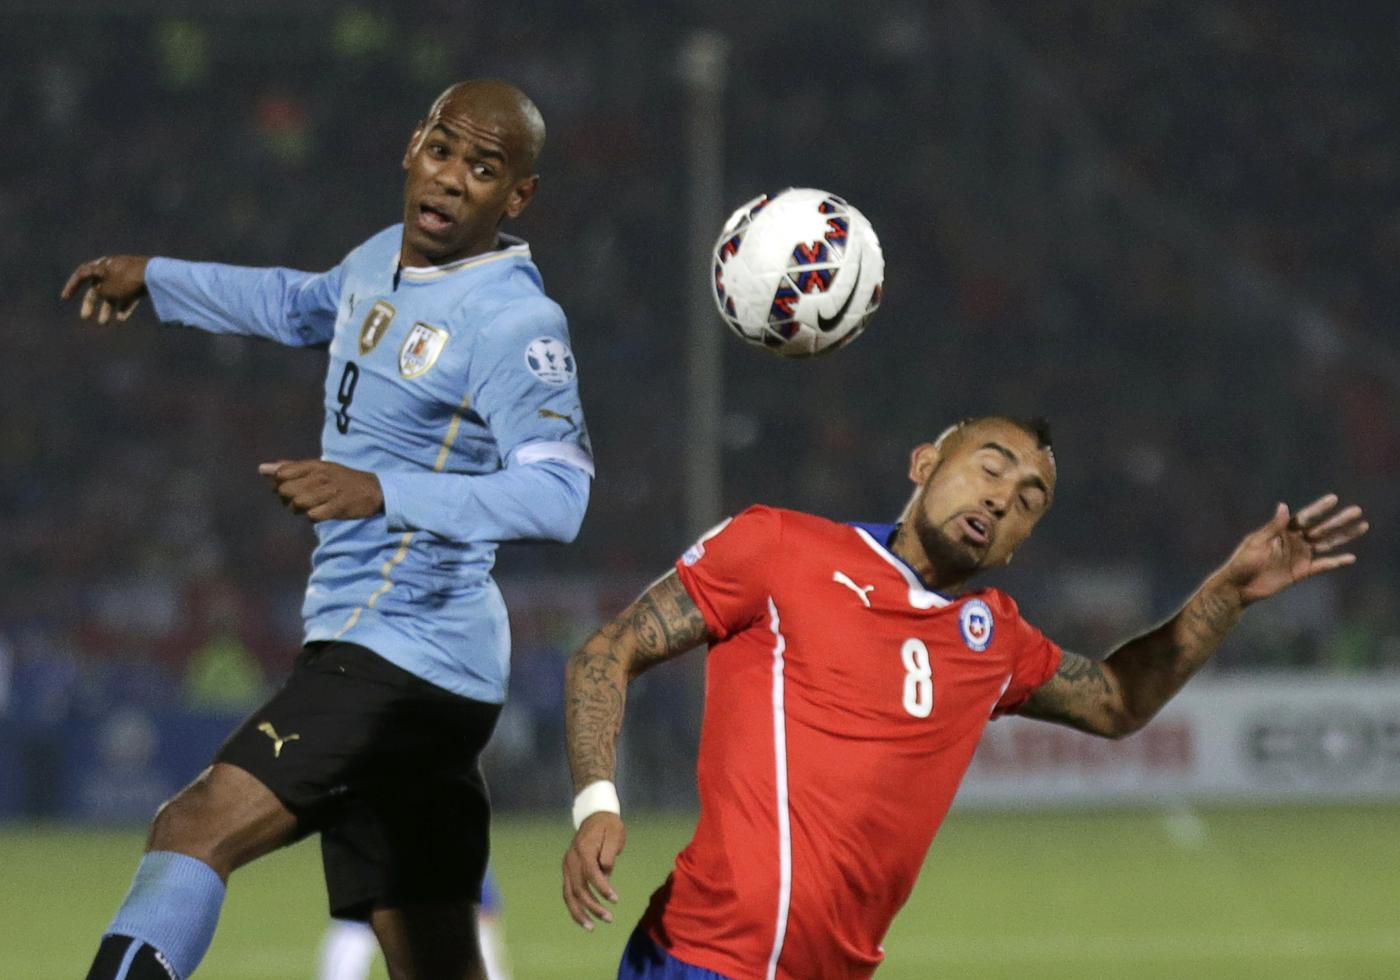 Diego Rolan 'a transfer target for Newcastle United, Bordeaux president Jean-Louis Triaud confirms Magpies' interest'